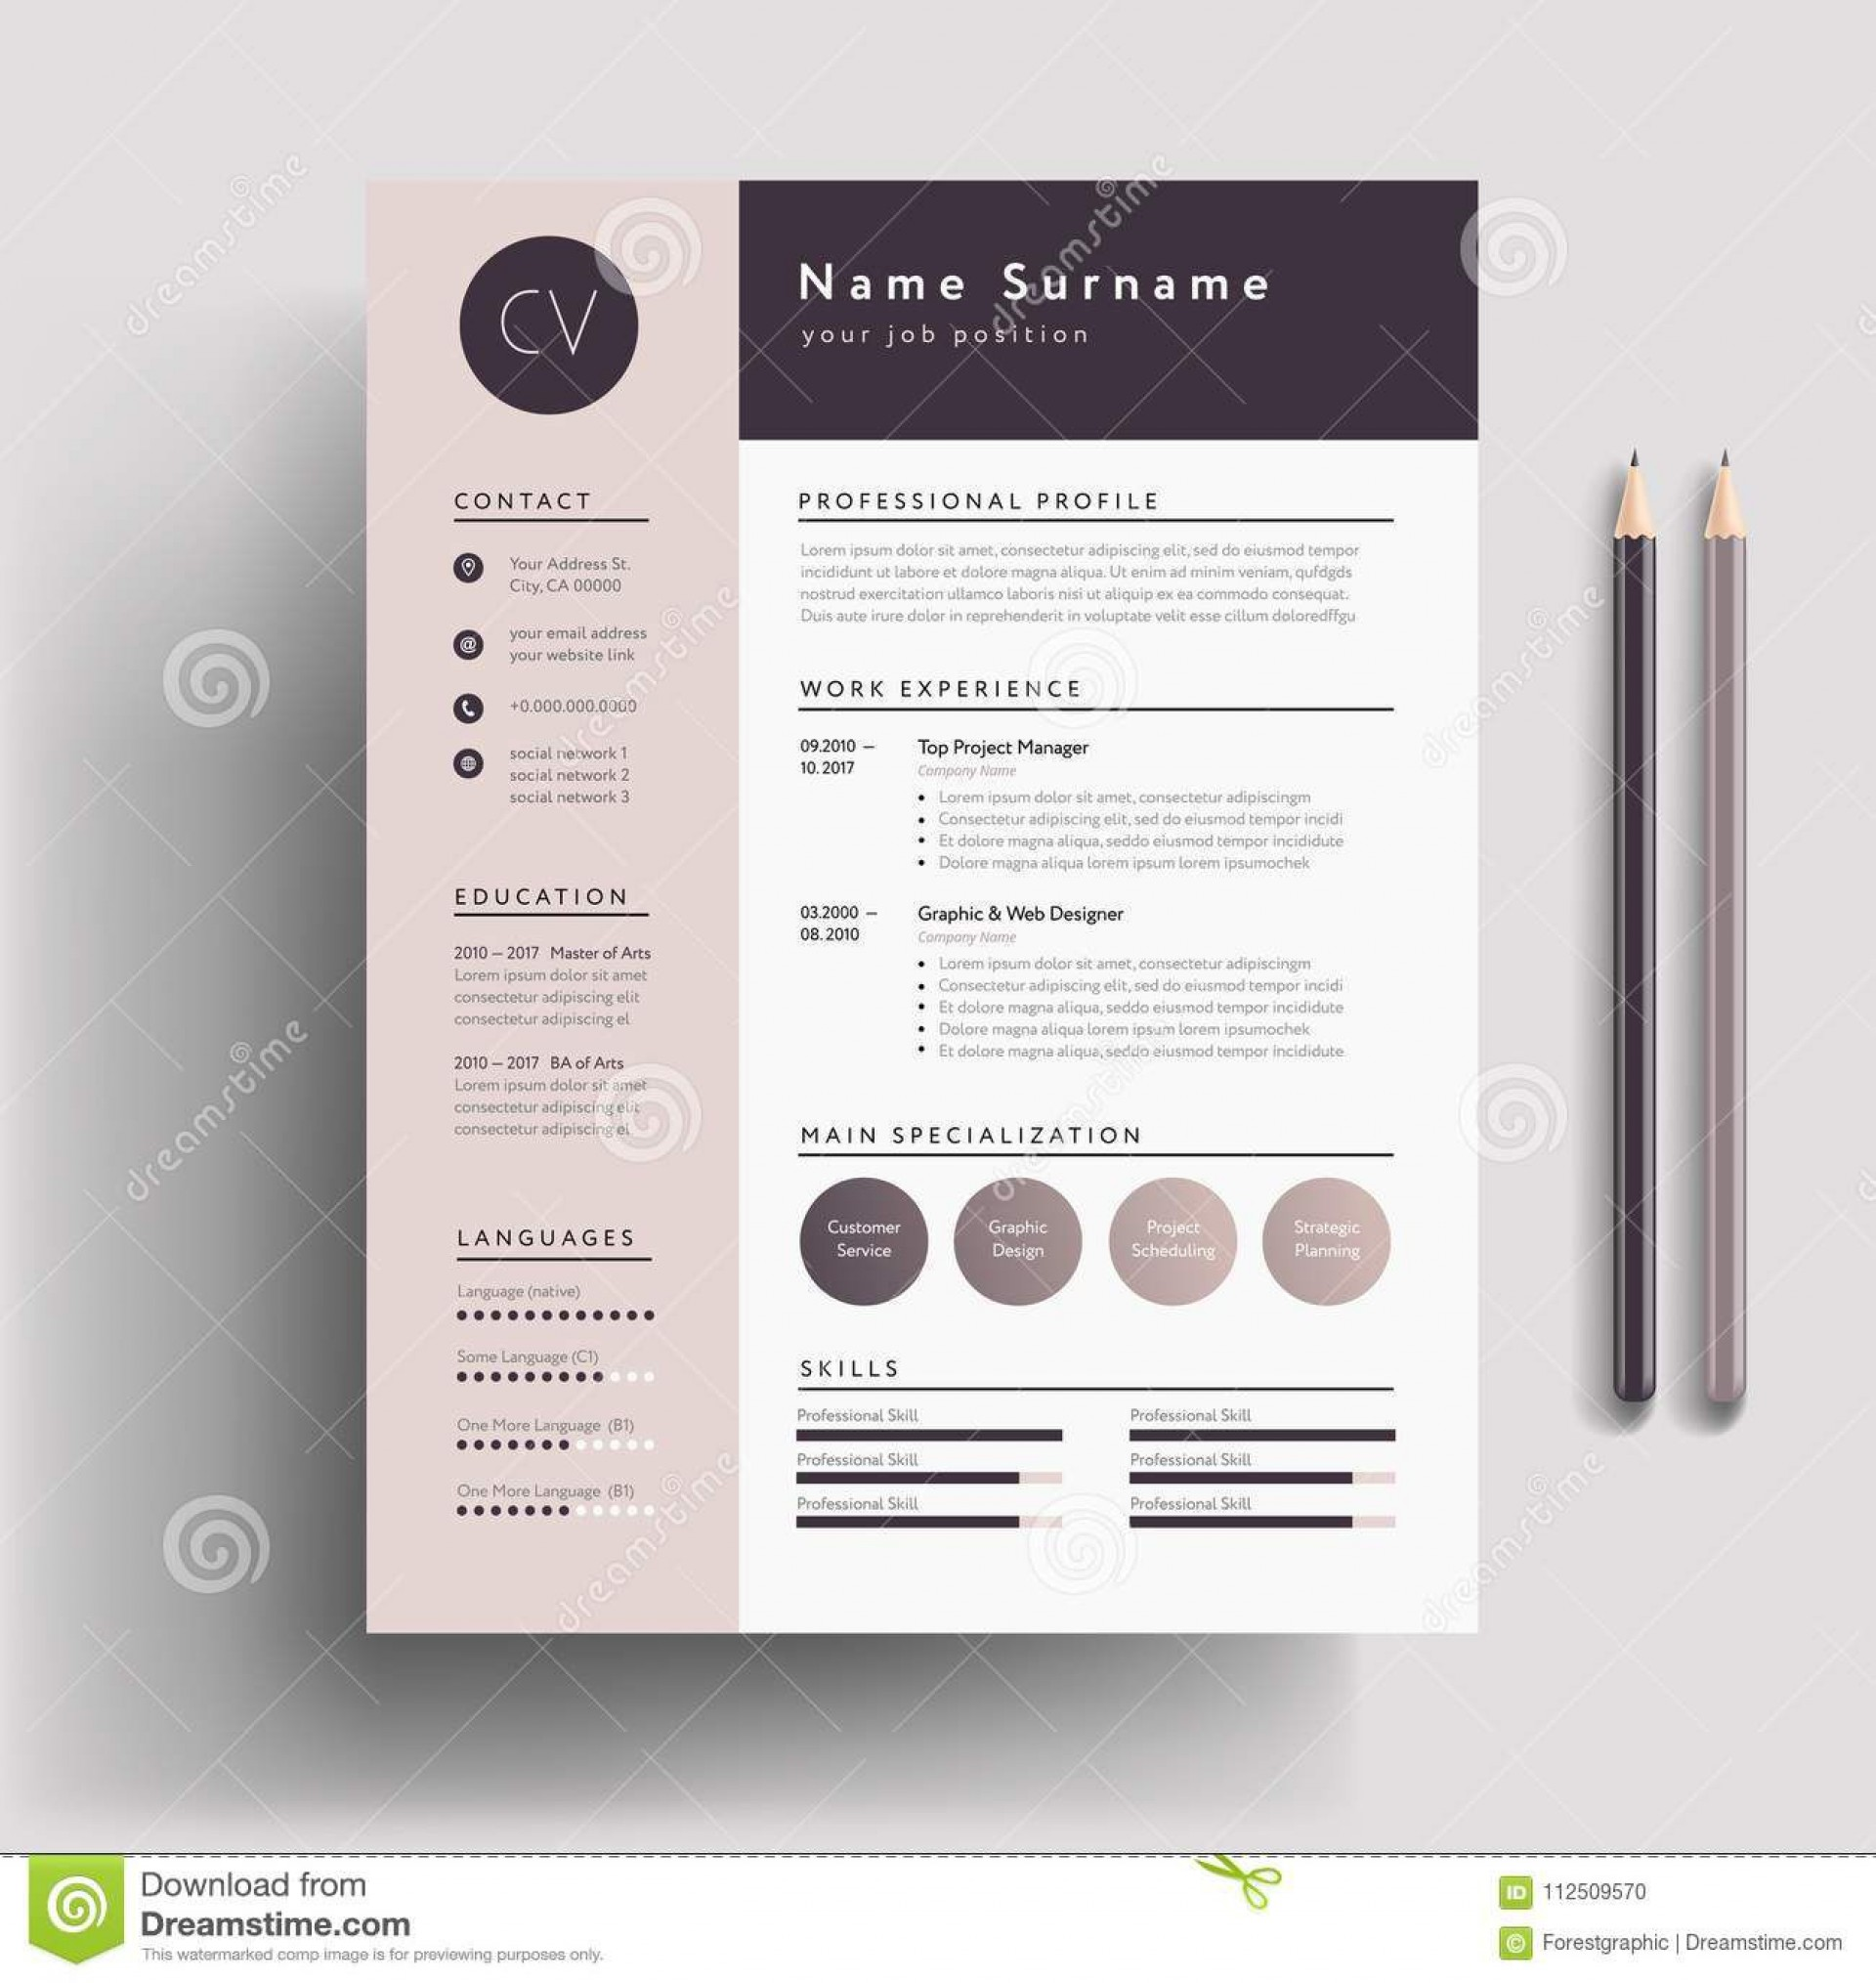 001 Awful Free Stylish Resume Template Concept  Templates Word Download1920